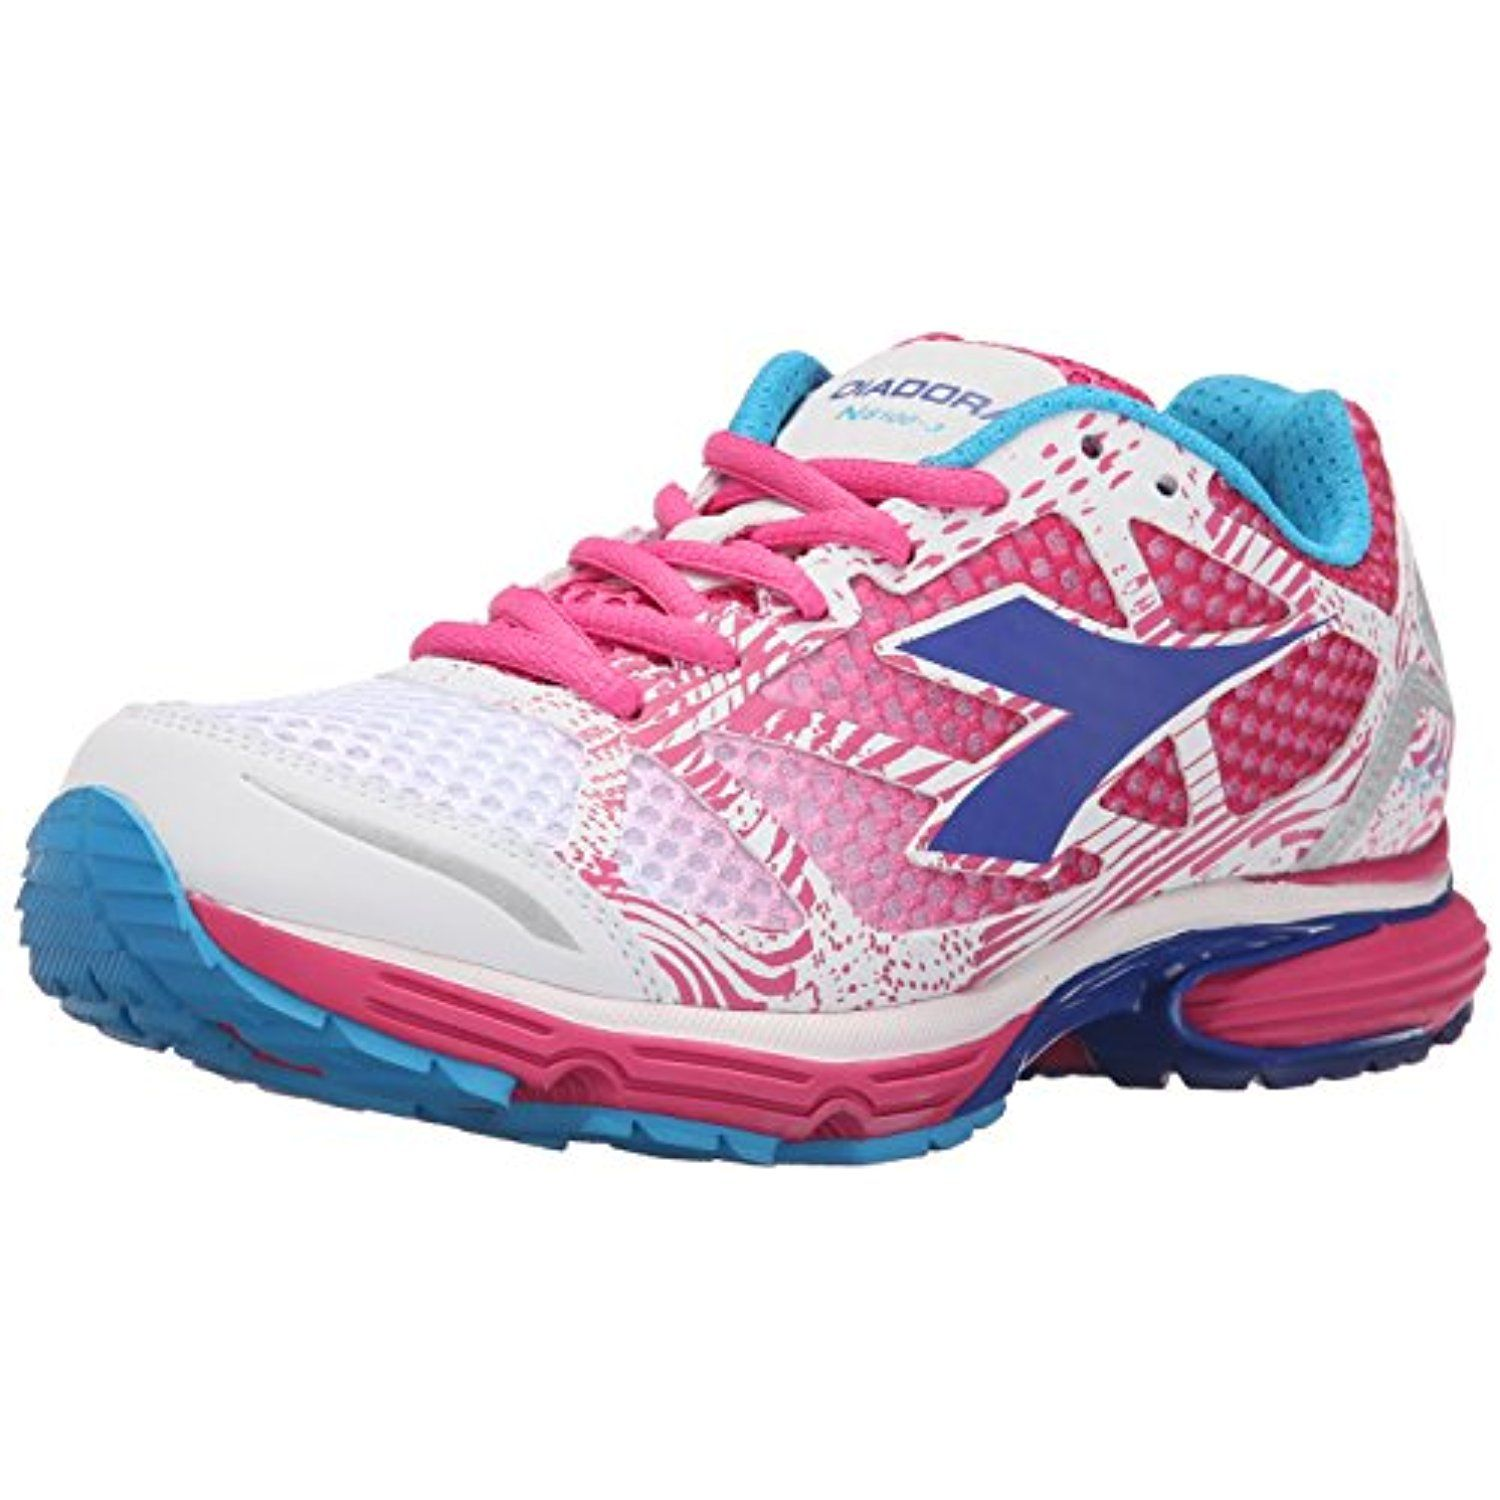 Women's N61003 W Running Shoe You can find out more